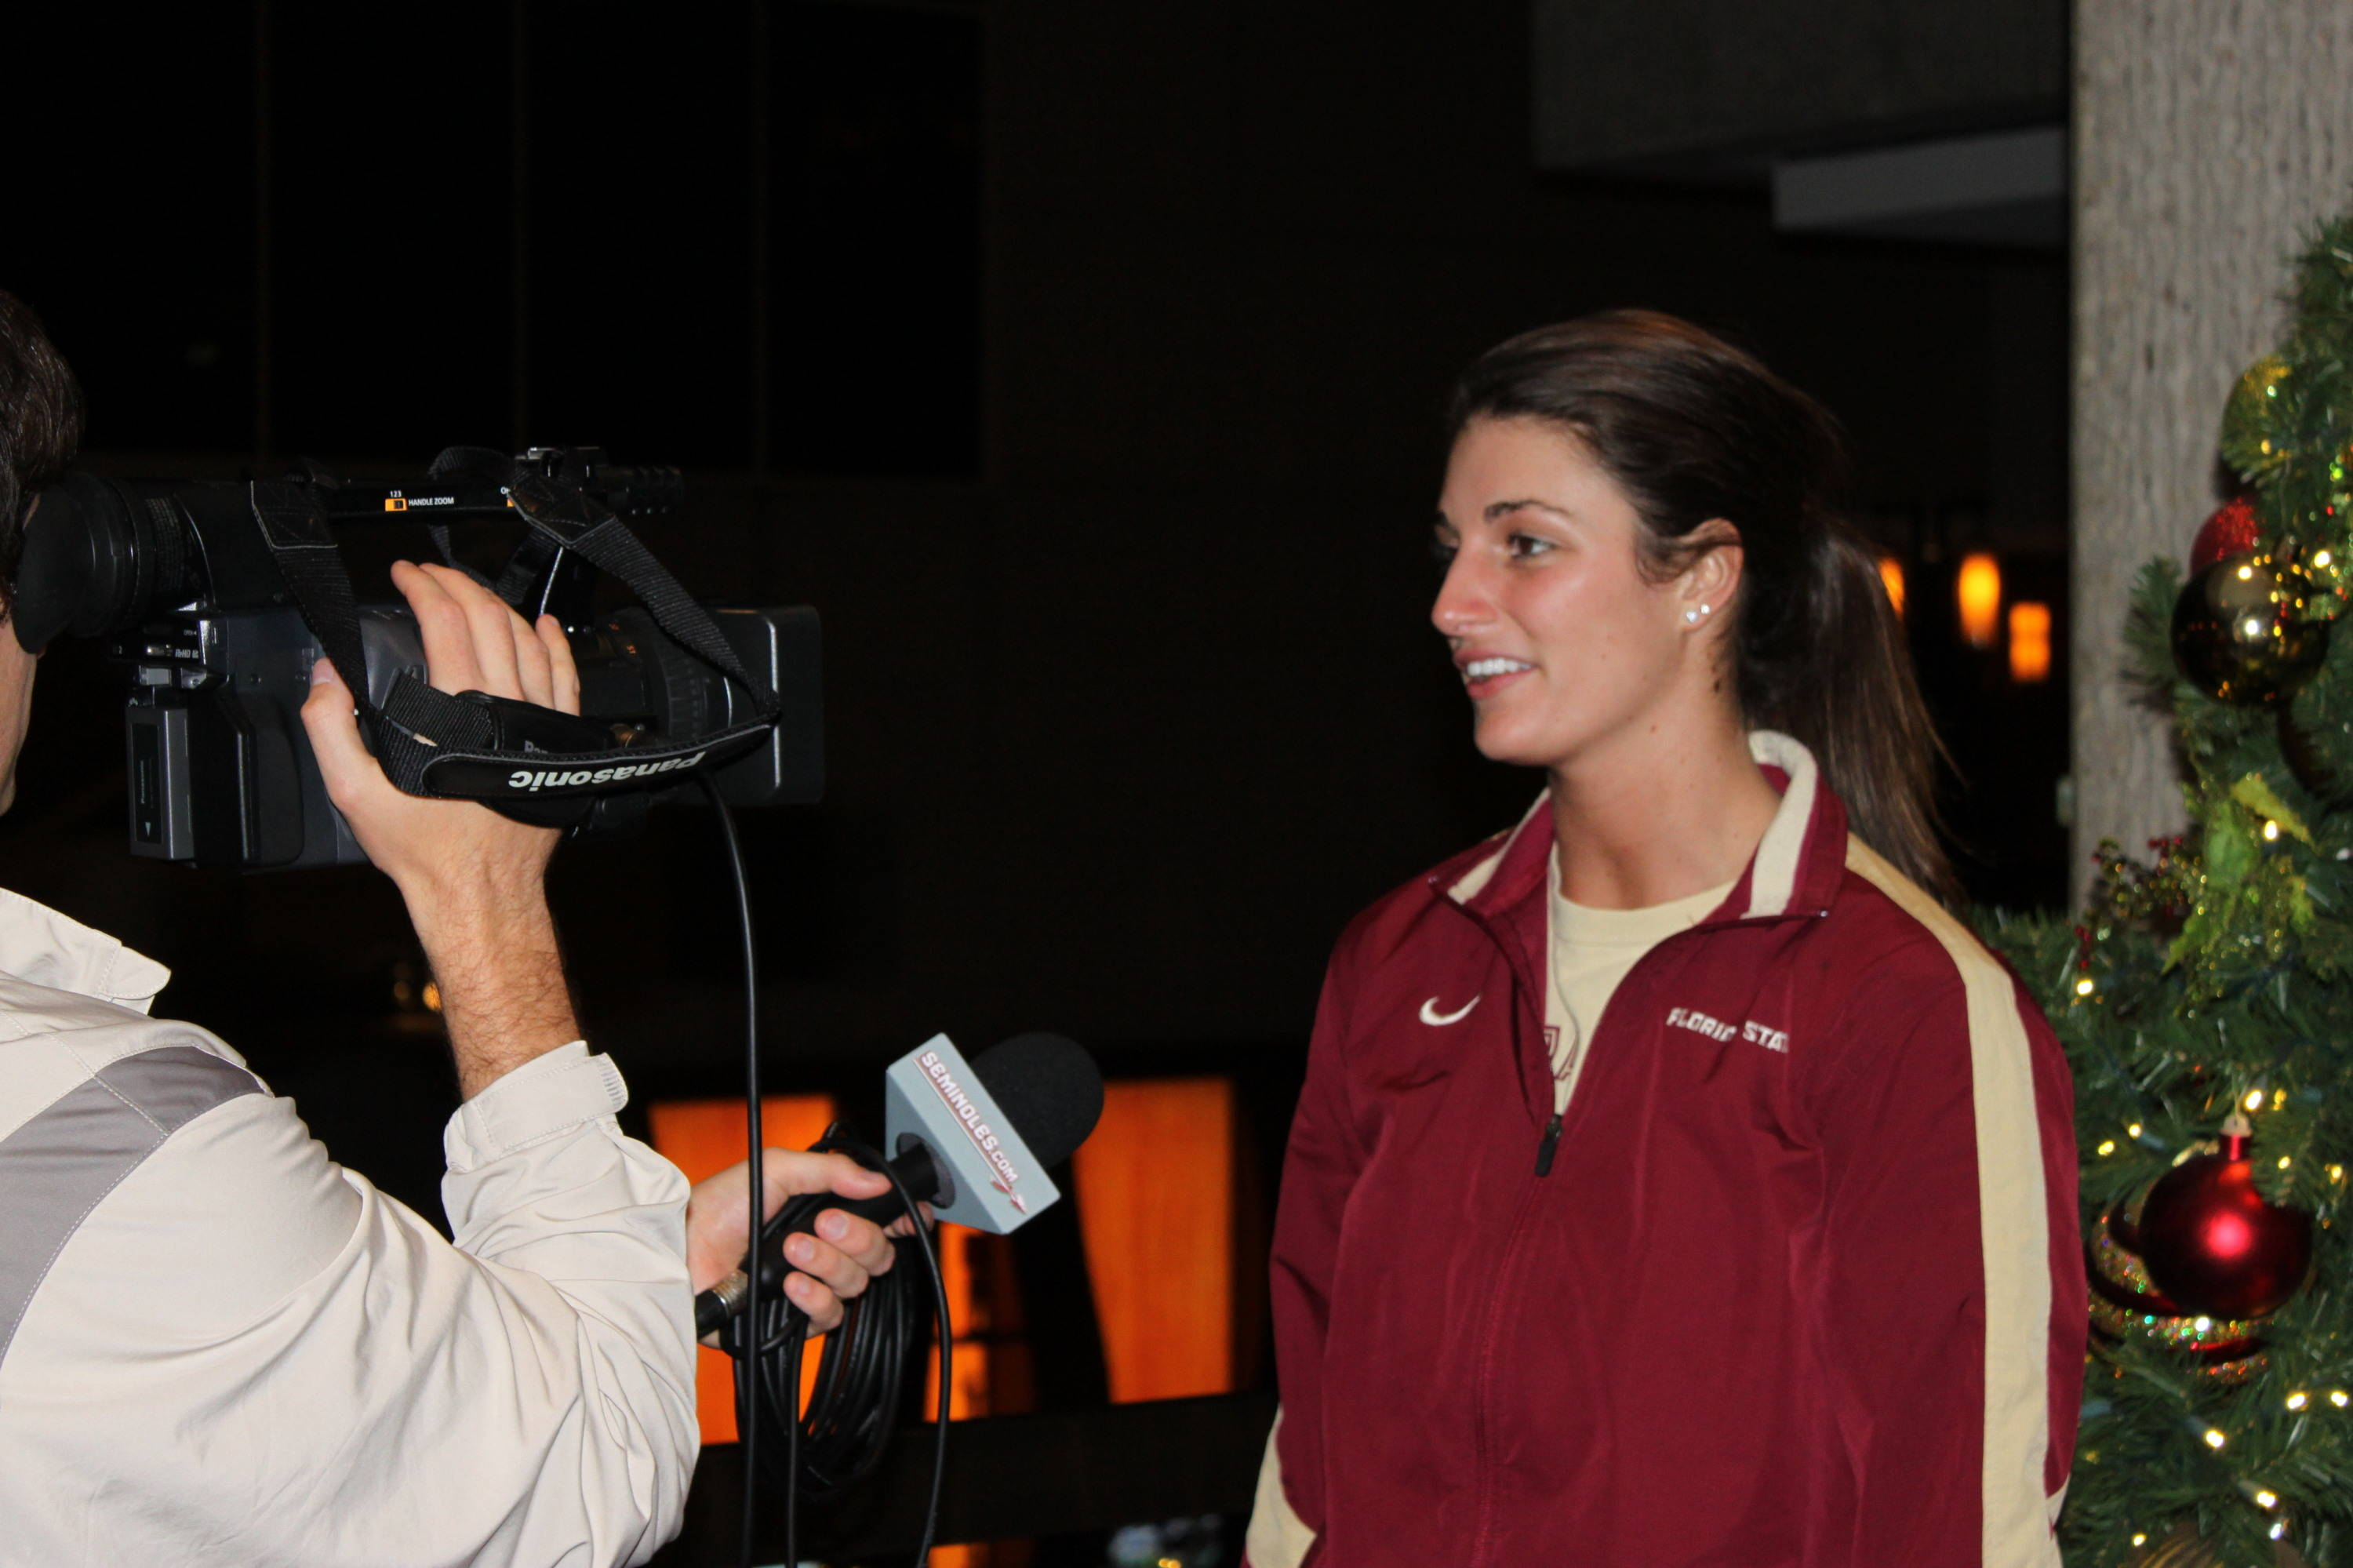 Interview time for Rachael Morgan (1). She's always on camera!